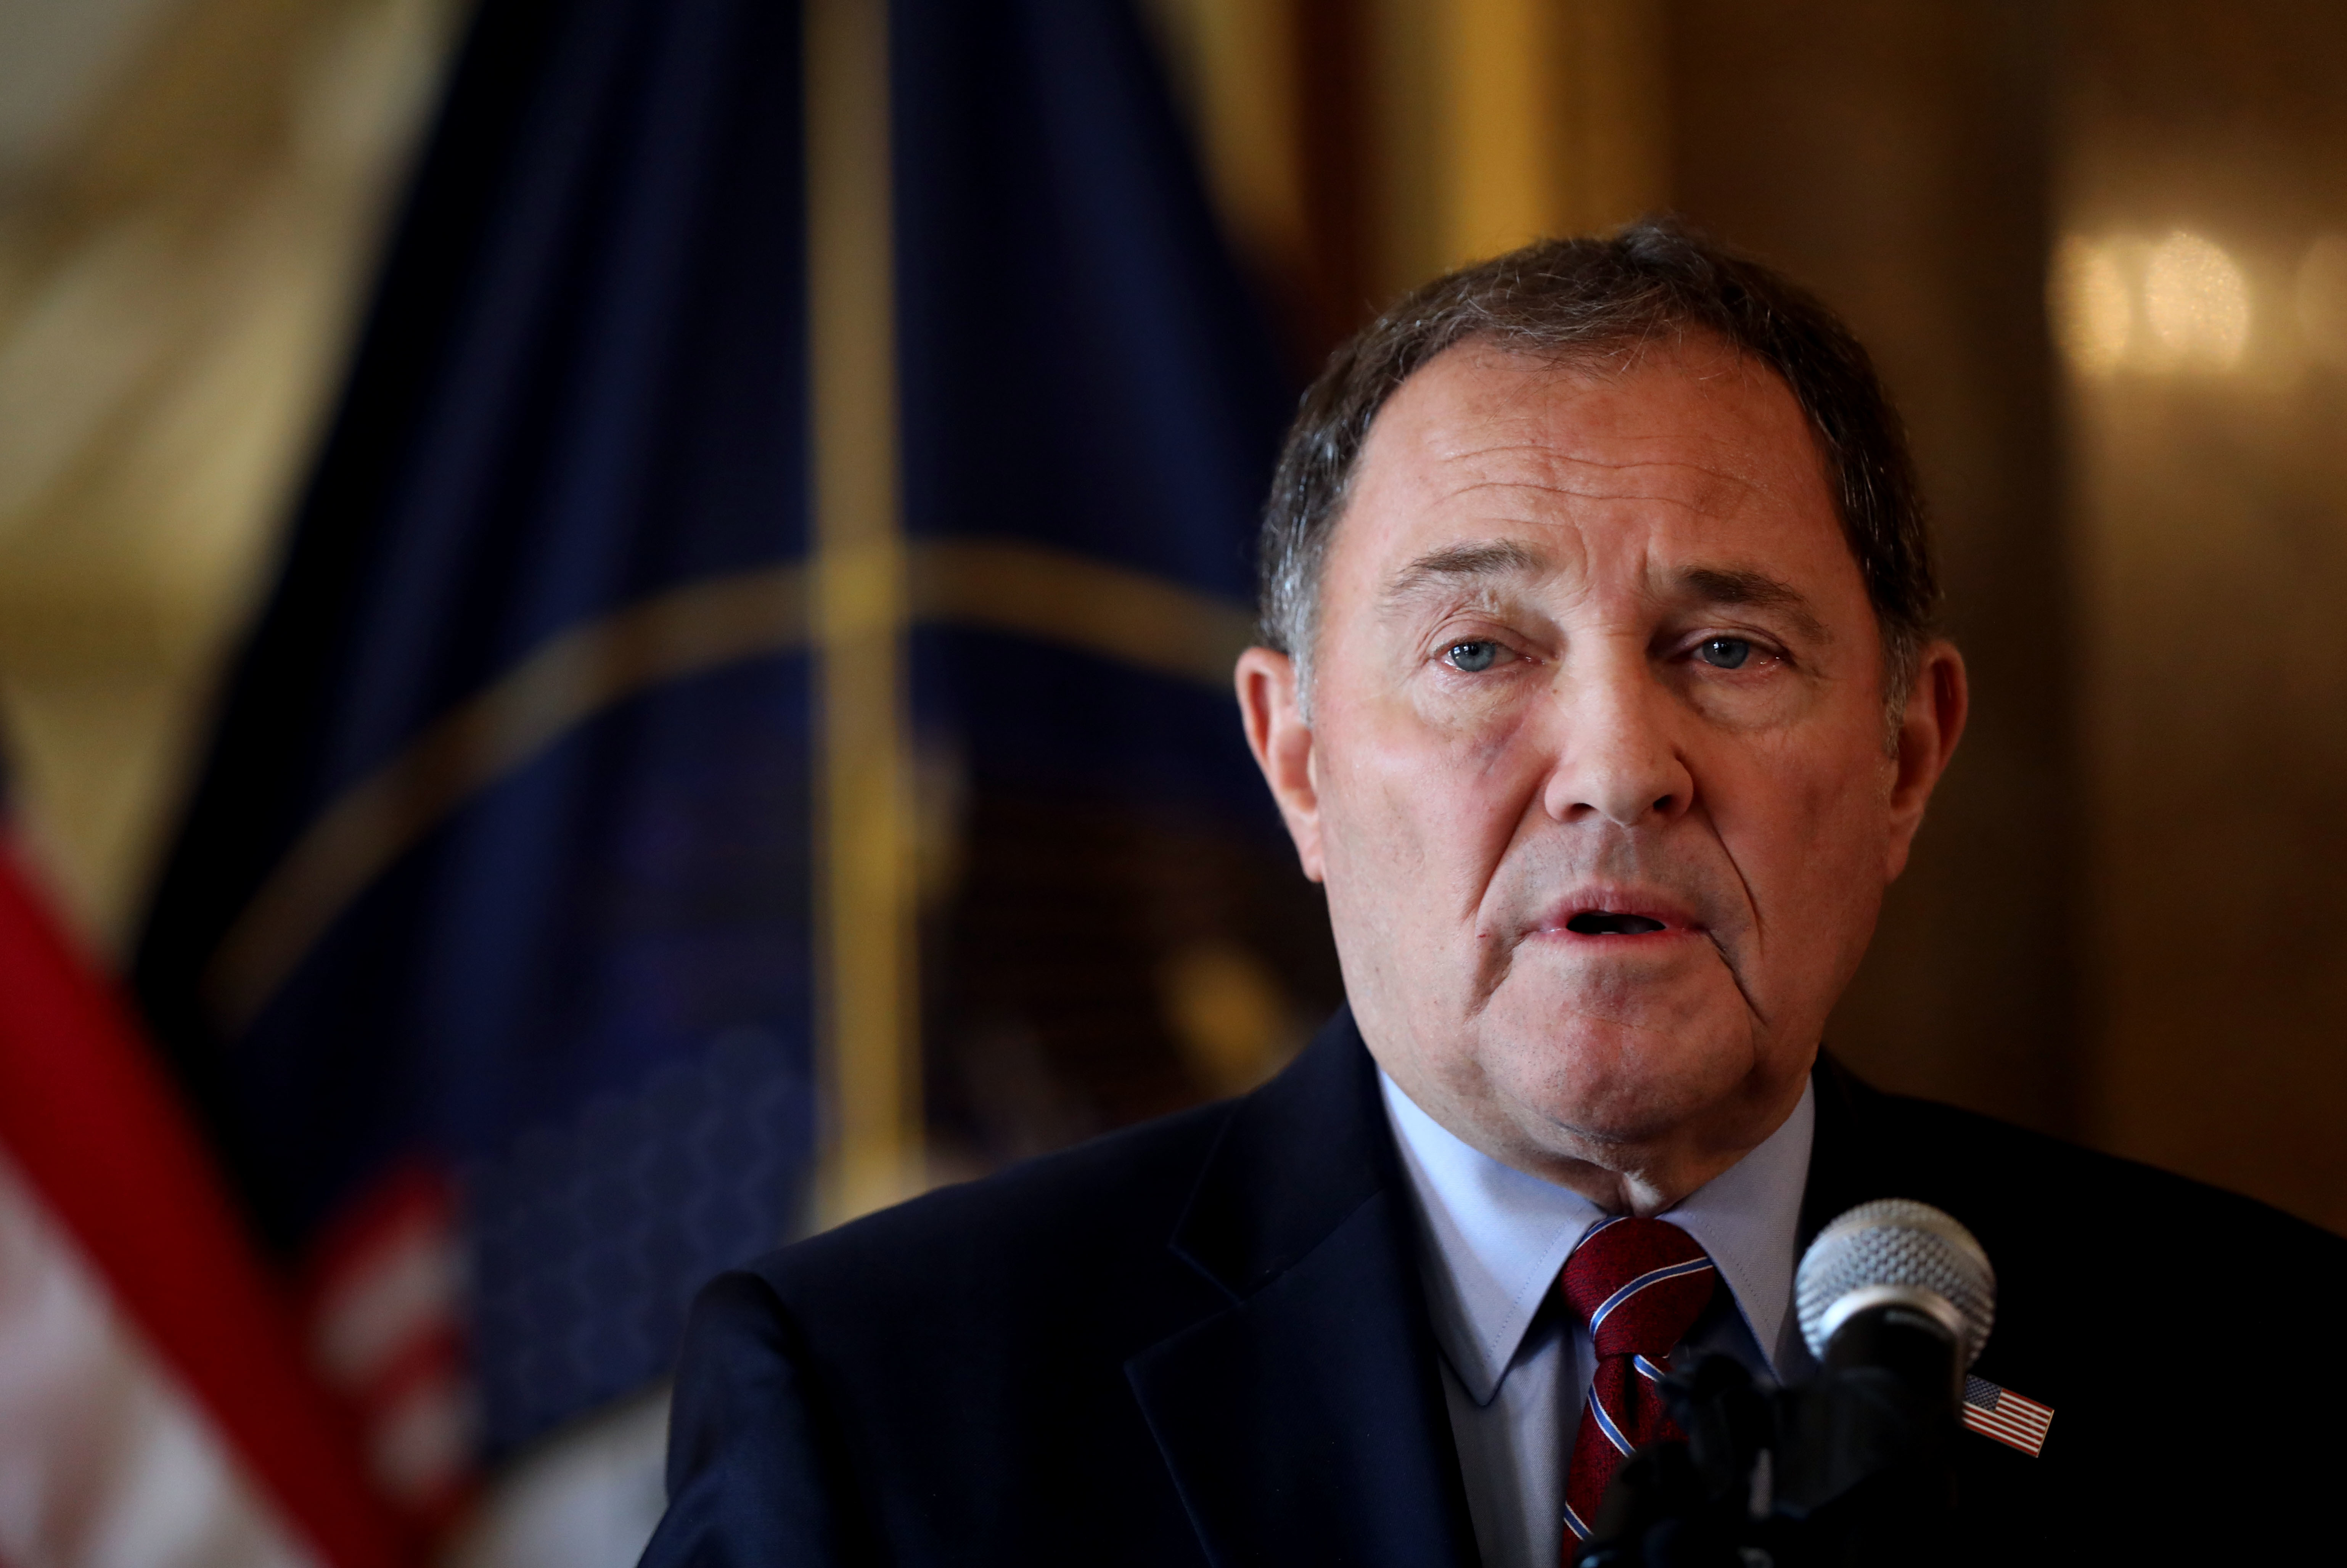 """Gov. Gary Herbert calls for """"civility"""" during a press conference at the Capitol in Salt Lake City on Wednesday, July 10, 2019, a day after anti-inland port protesters stormed the Chamber of Commerce Building and clashed with police."""